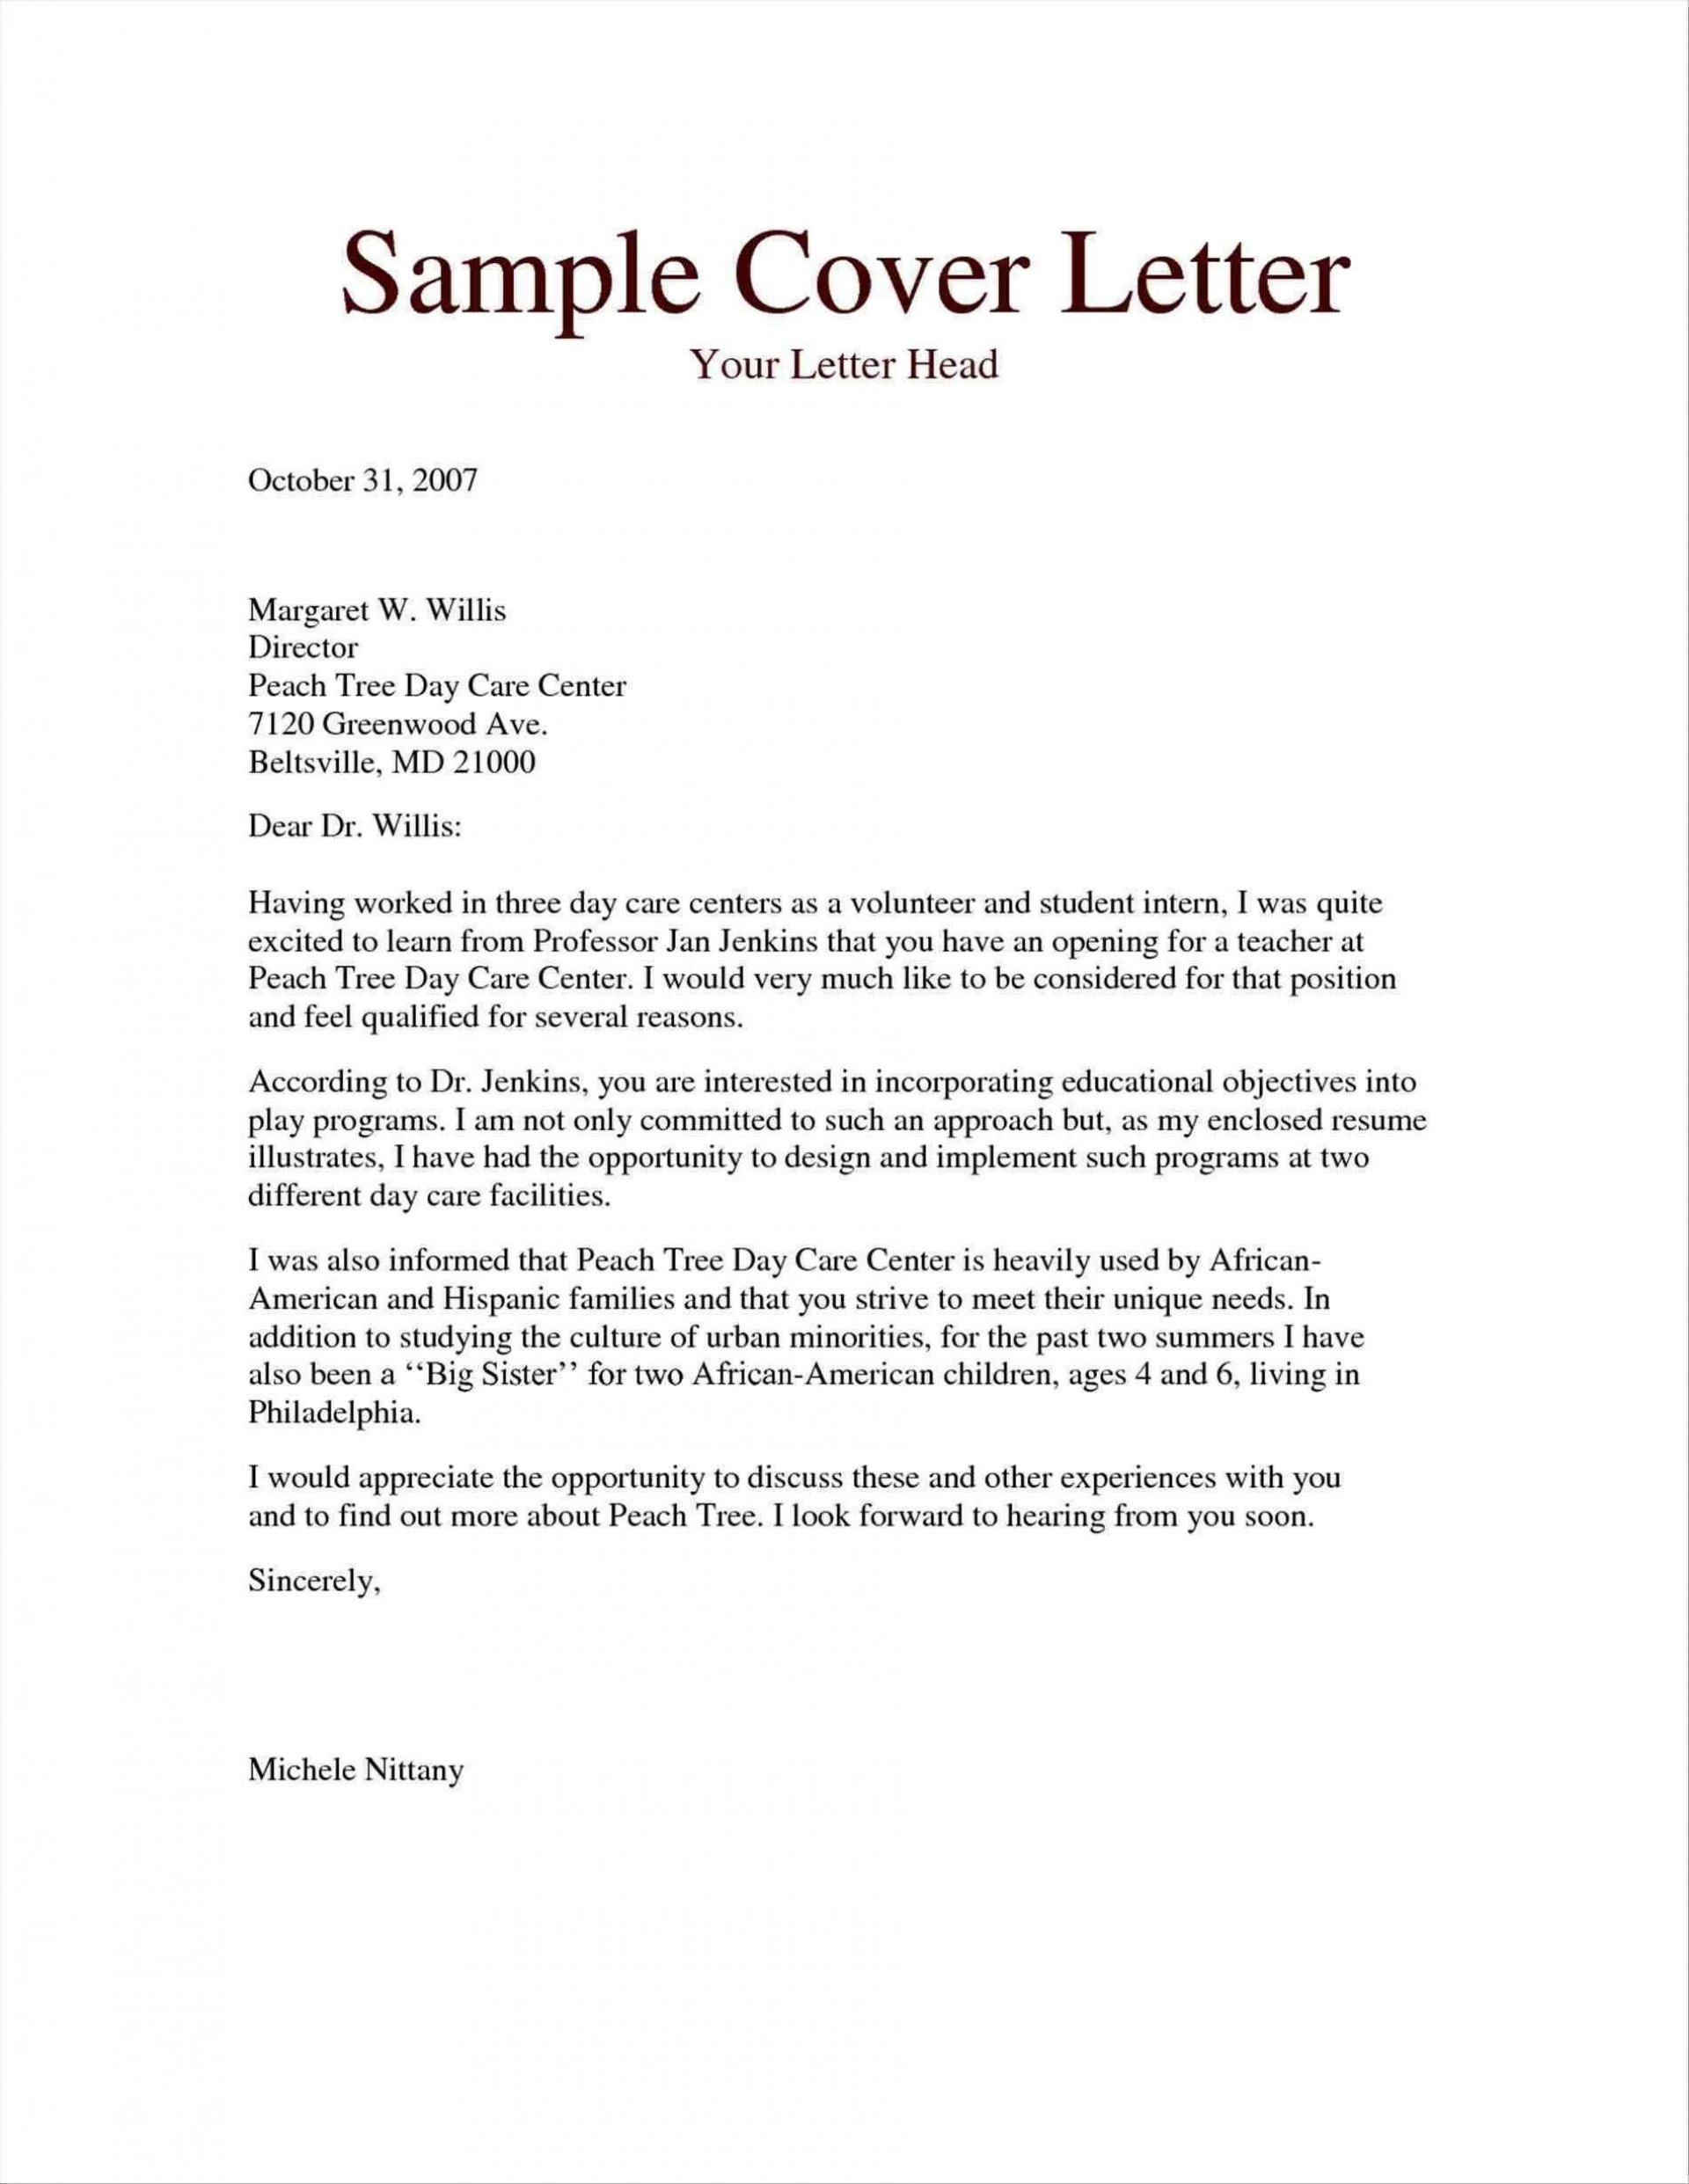 004 Fantastic Free Download Cover Letter Sample High Definition  For Fresher Pdf Template1920